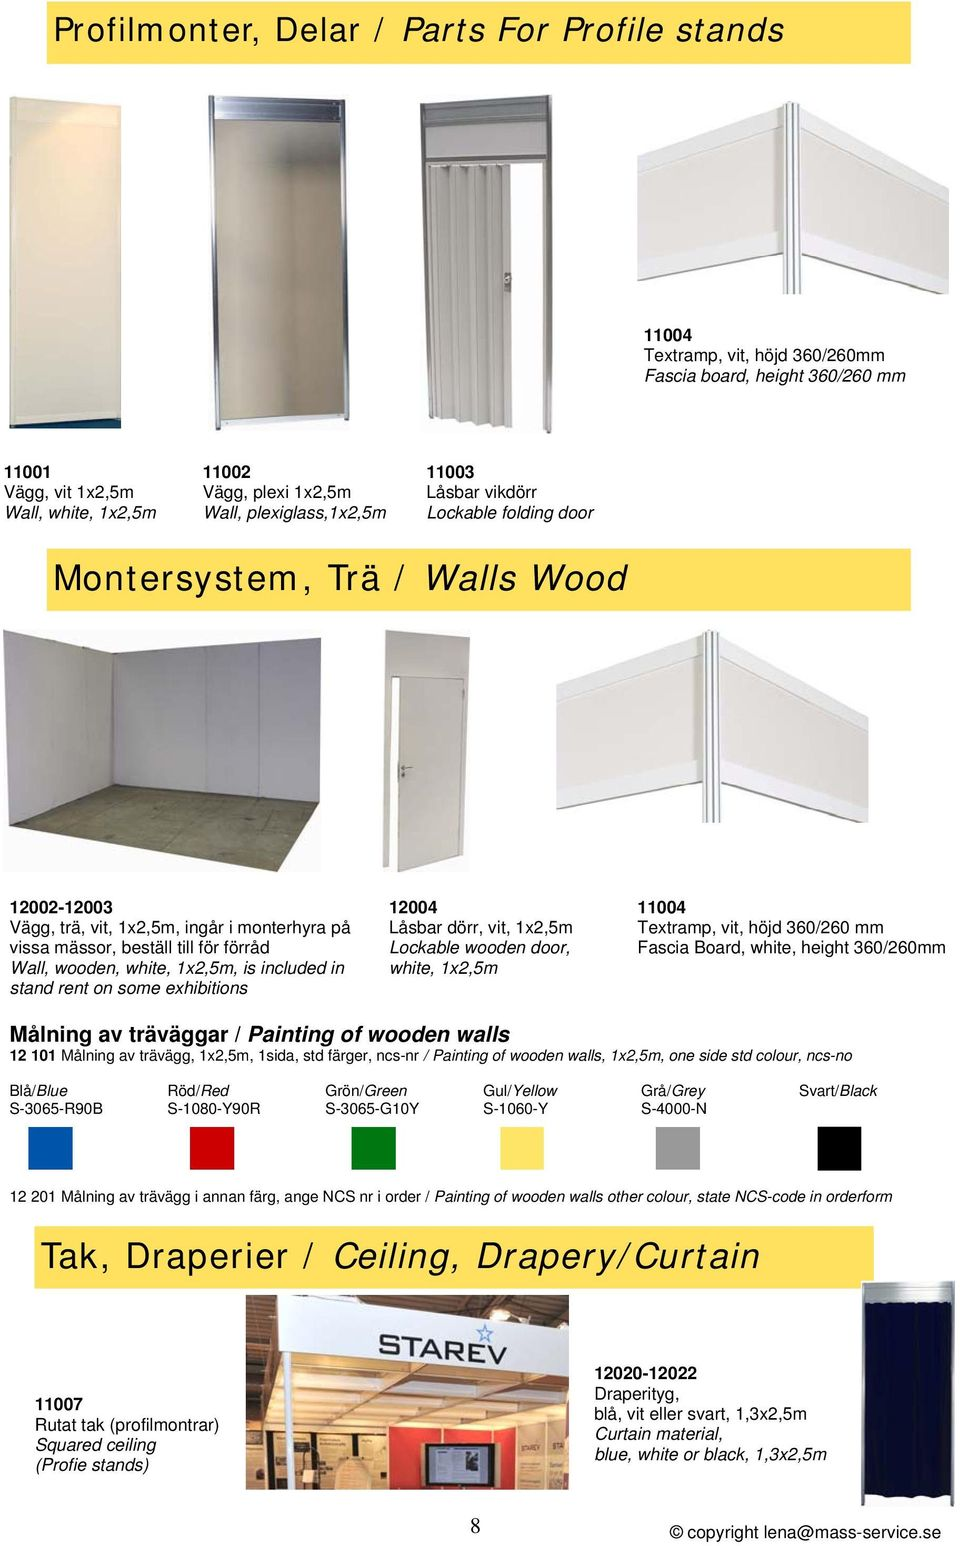 wooden, white, 1x2,5m, is included in stand rent on some exhibitions 12004 Låsbar dörr, vit, 1x2,5m Lockable wooden door, white, 1x2,5m 11004 Textramp, vit, höjd 360/260 mm Fascia Board, white,